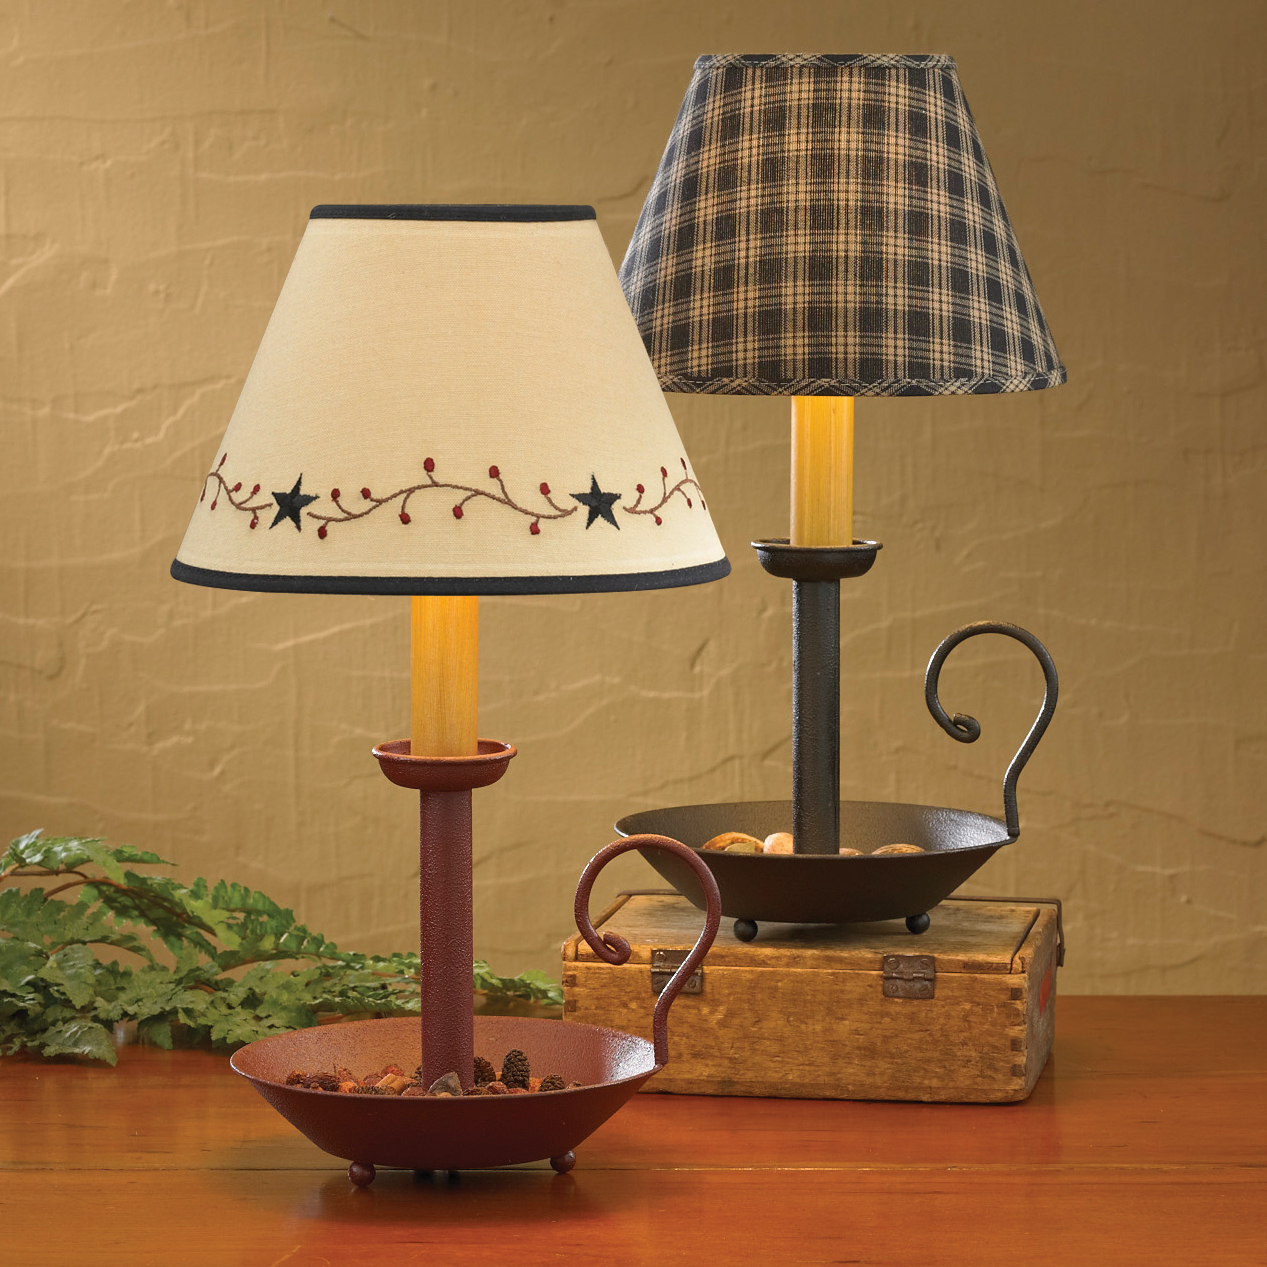 Country table lamps - Lamps For Your Home Decor | Warisan ...